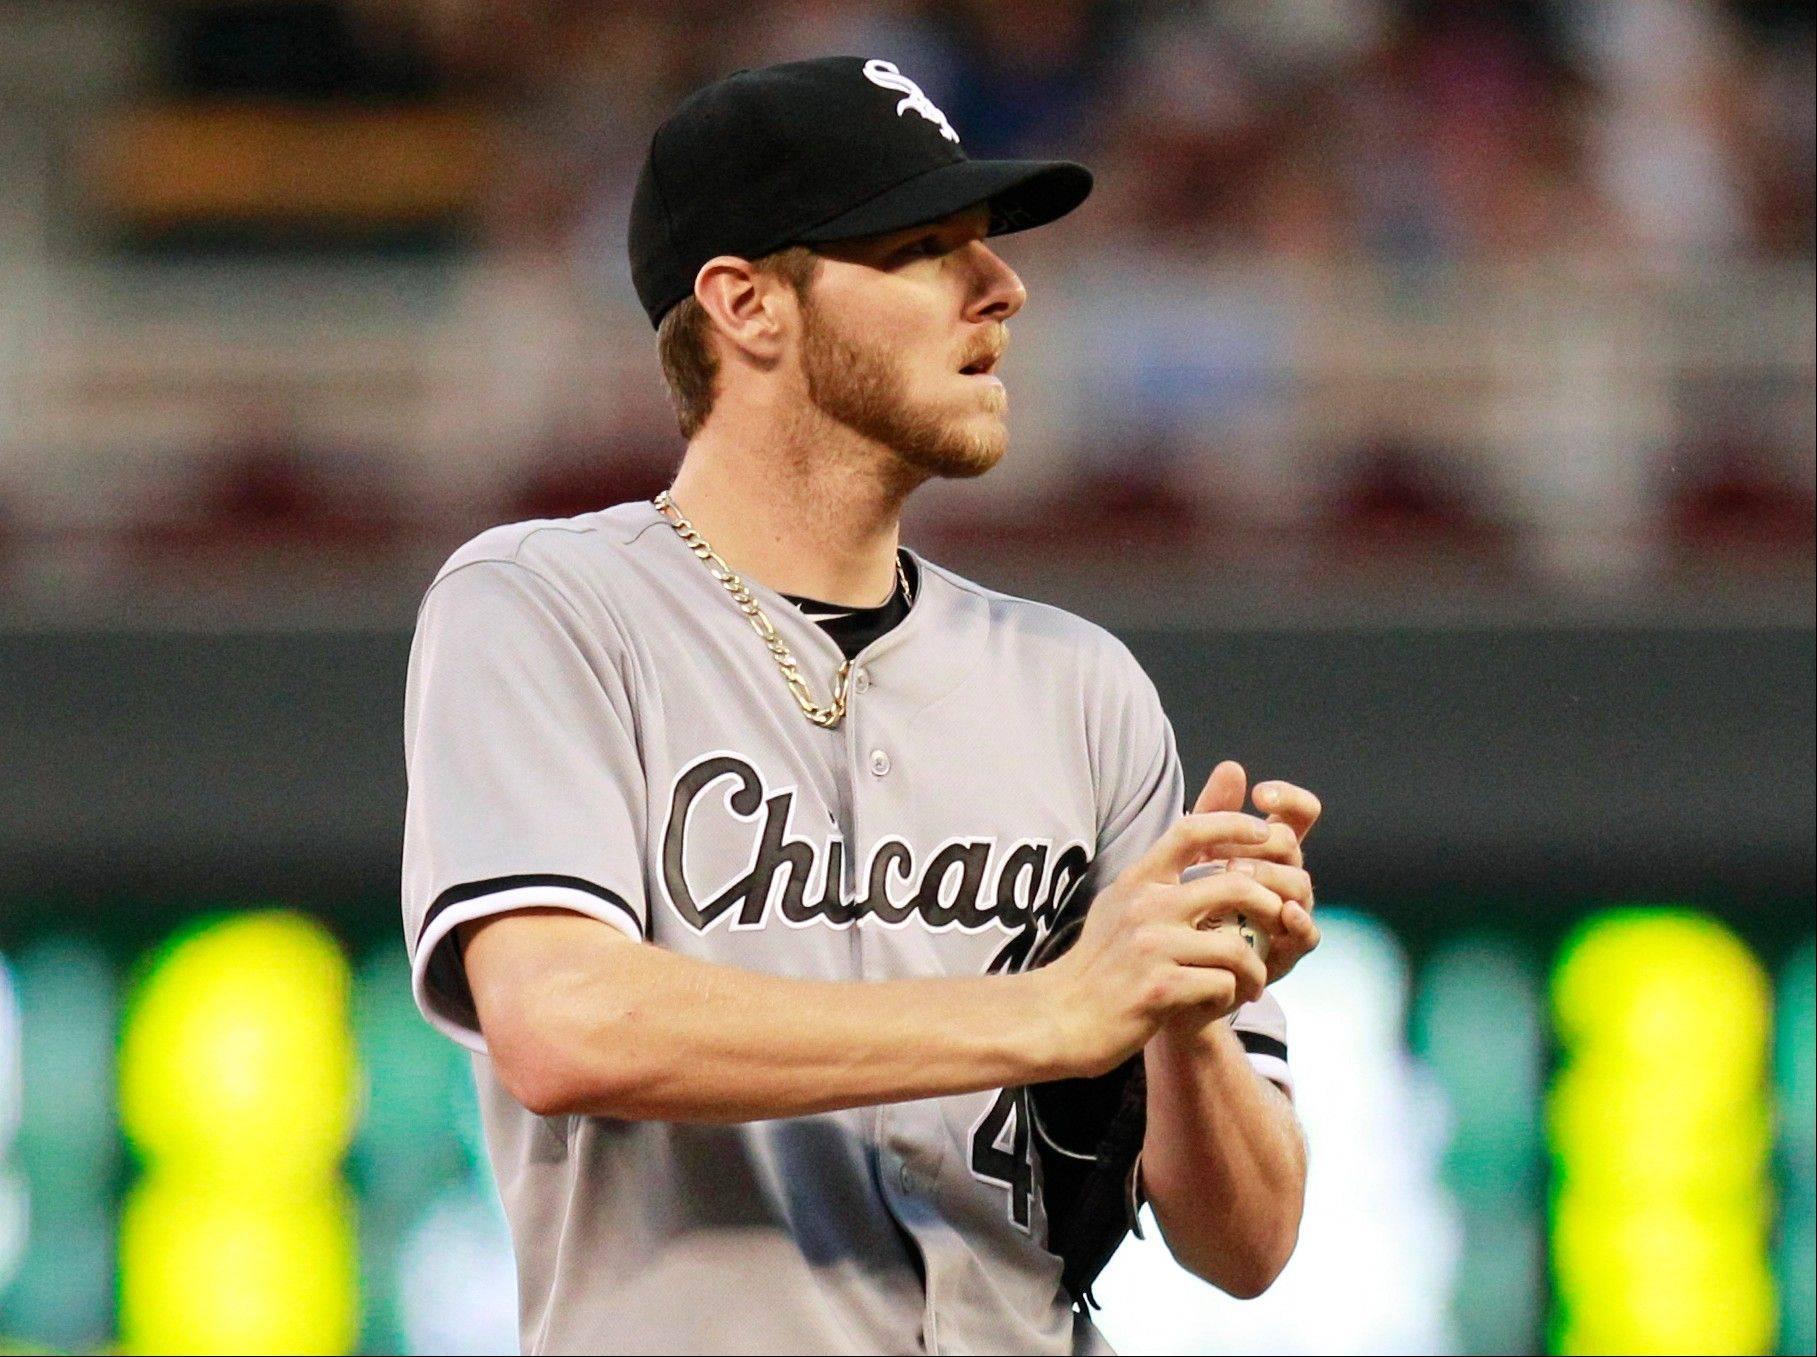 White Sox starting pitcher Chris Sale reacts after giving up a single to Minnesota Twins' Ryan Doumit during the fourth inning of a baseball game on Wednesday, June 19, 2013, in Minneapolis.